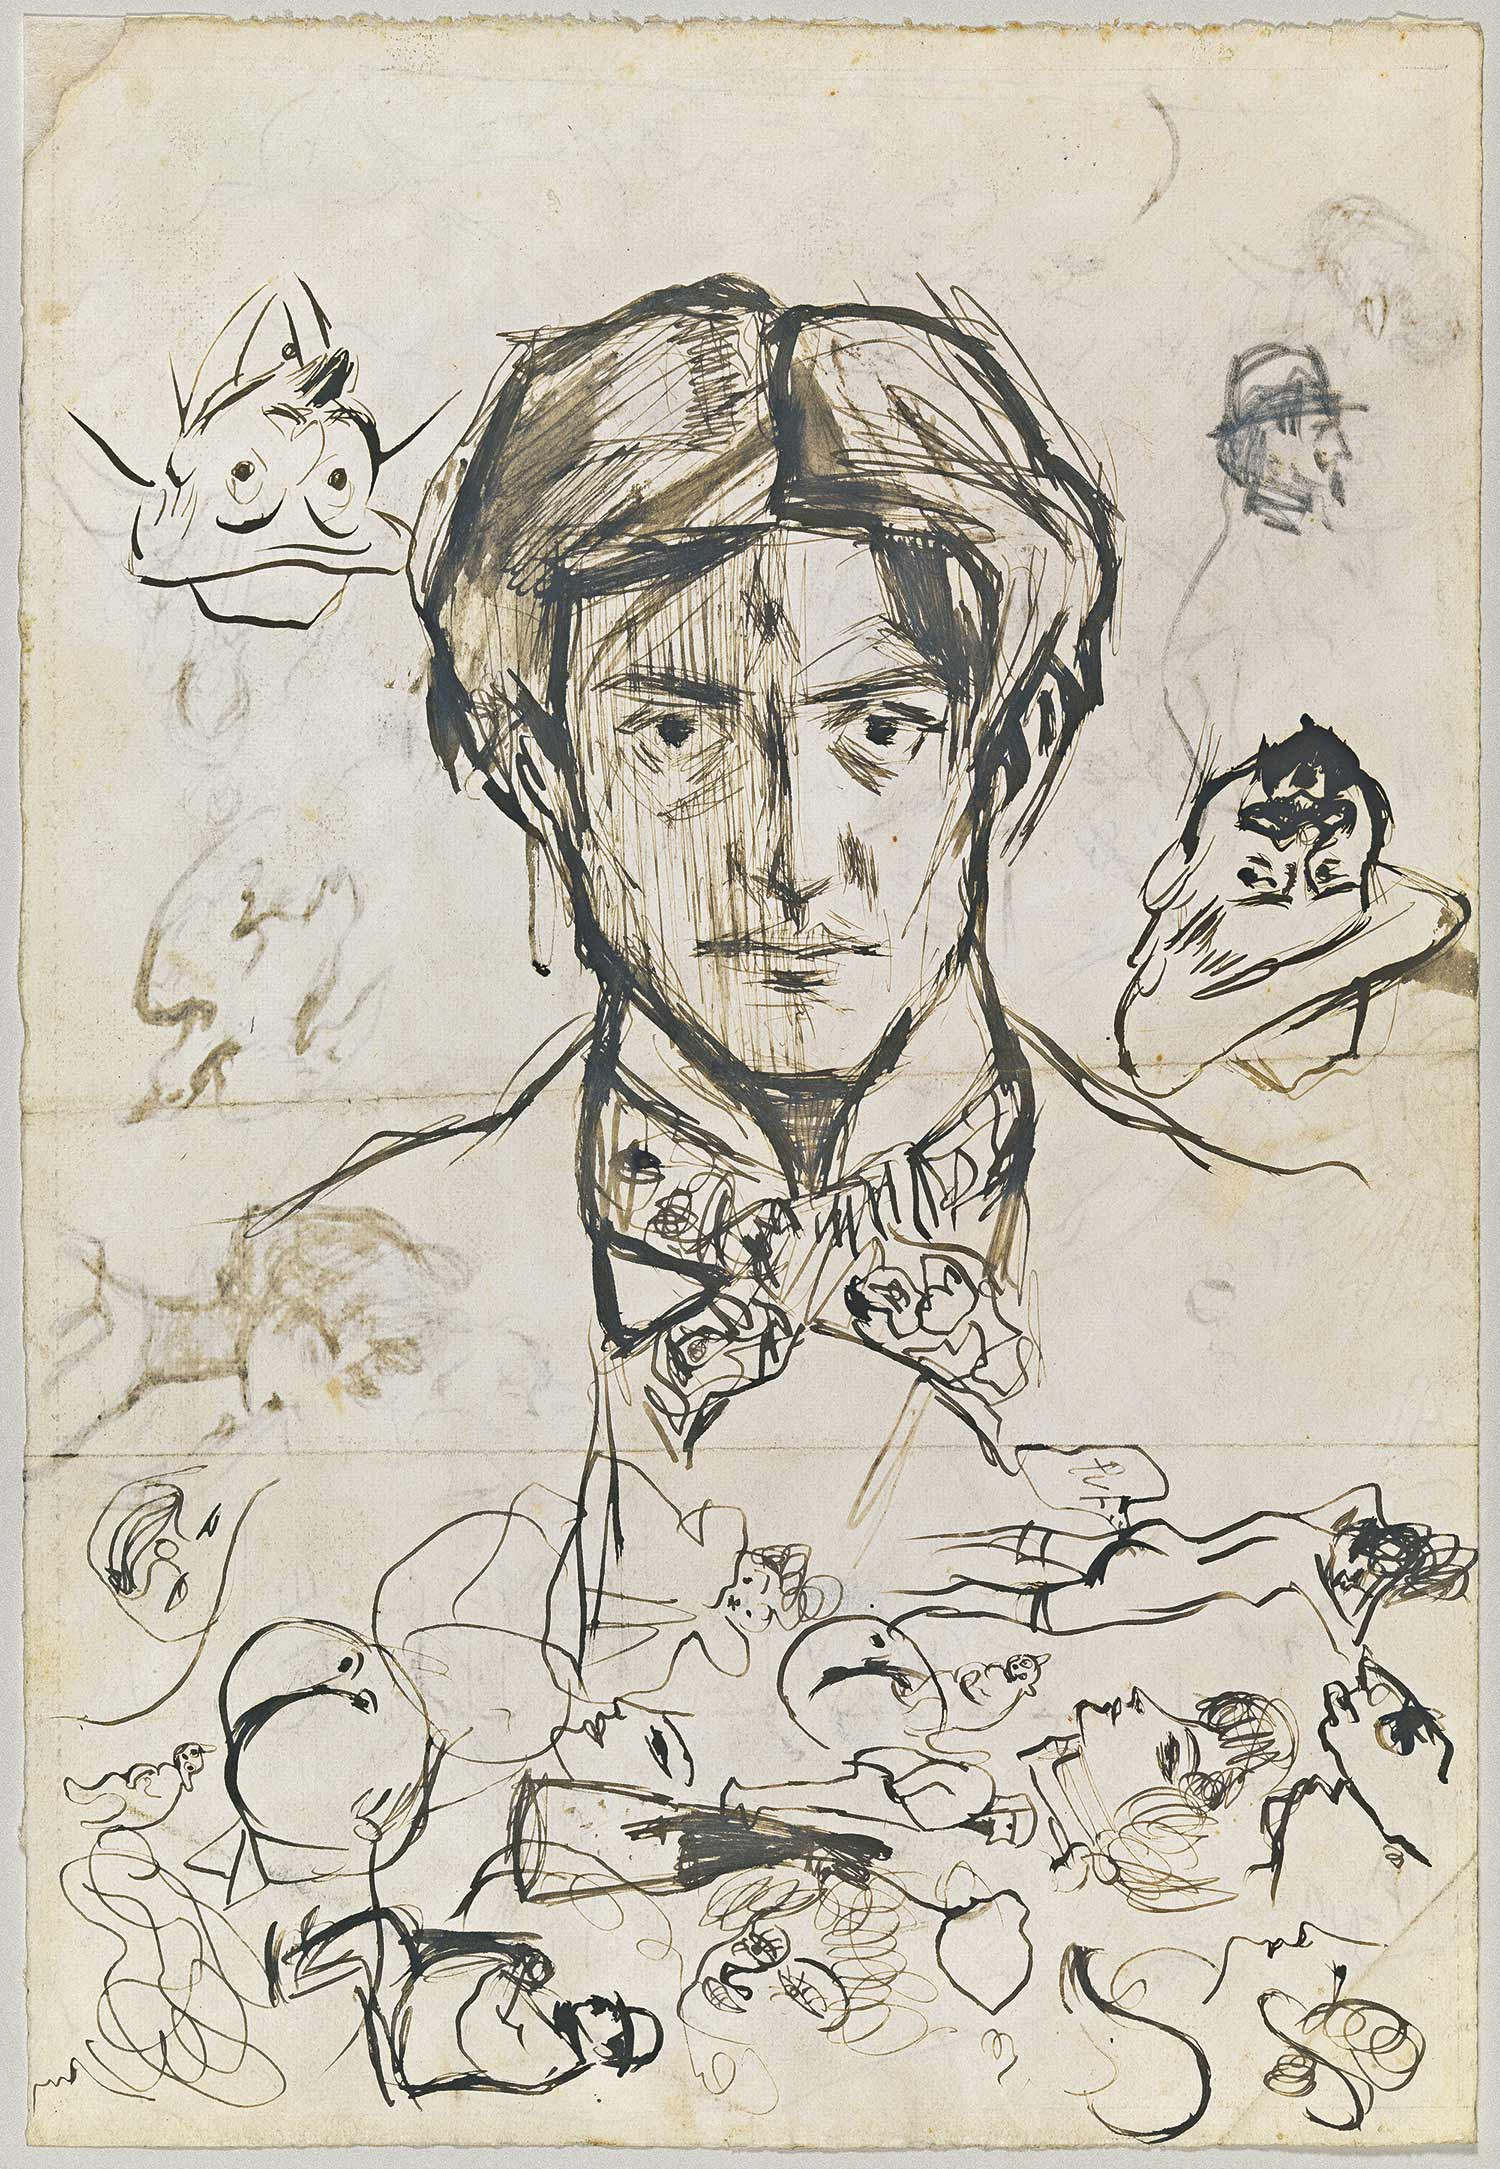 Self-portrait, sketches of Pompeu Gener and Oriol Martí and other sketches